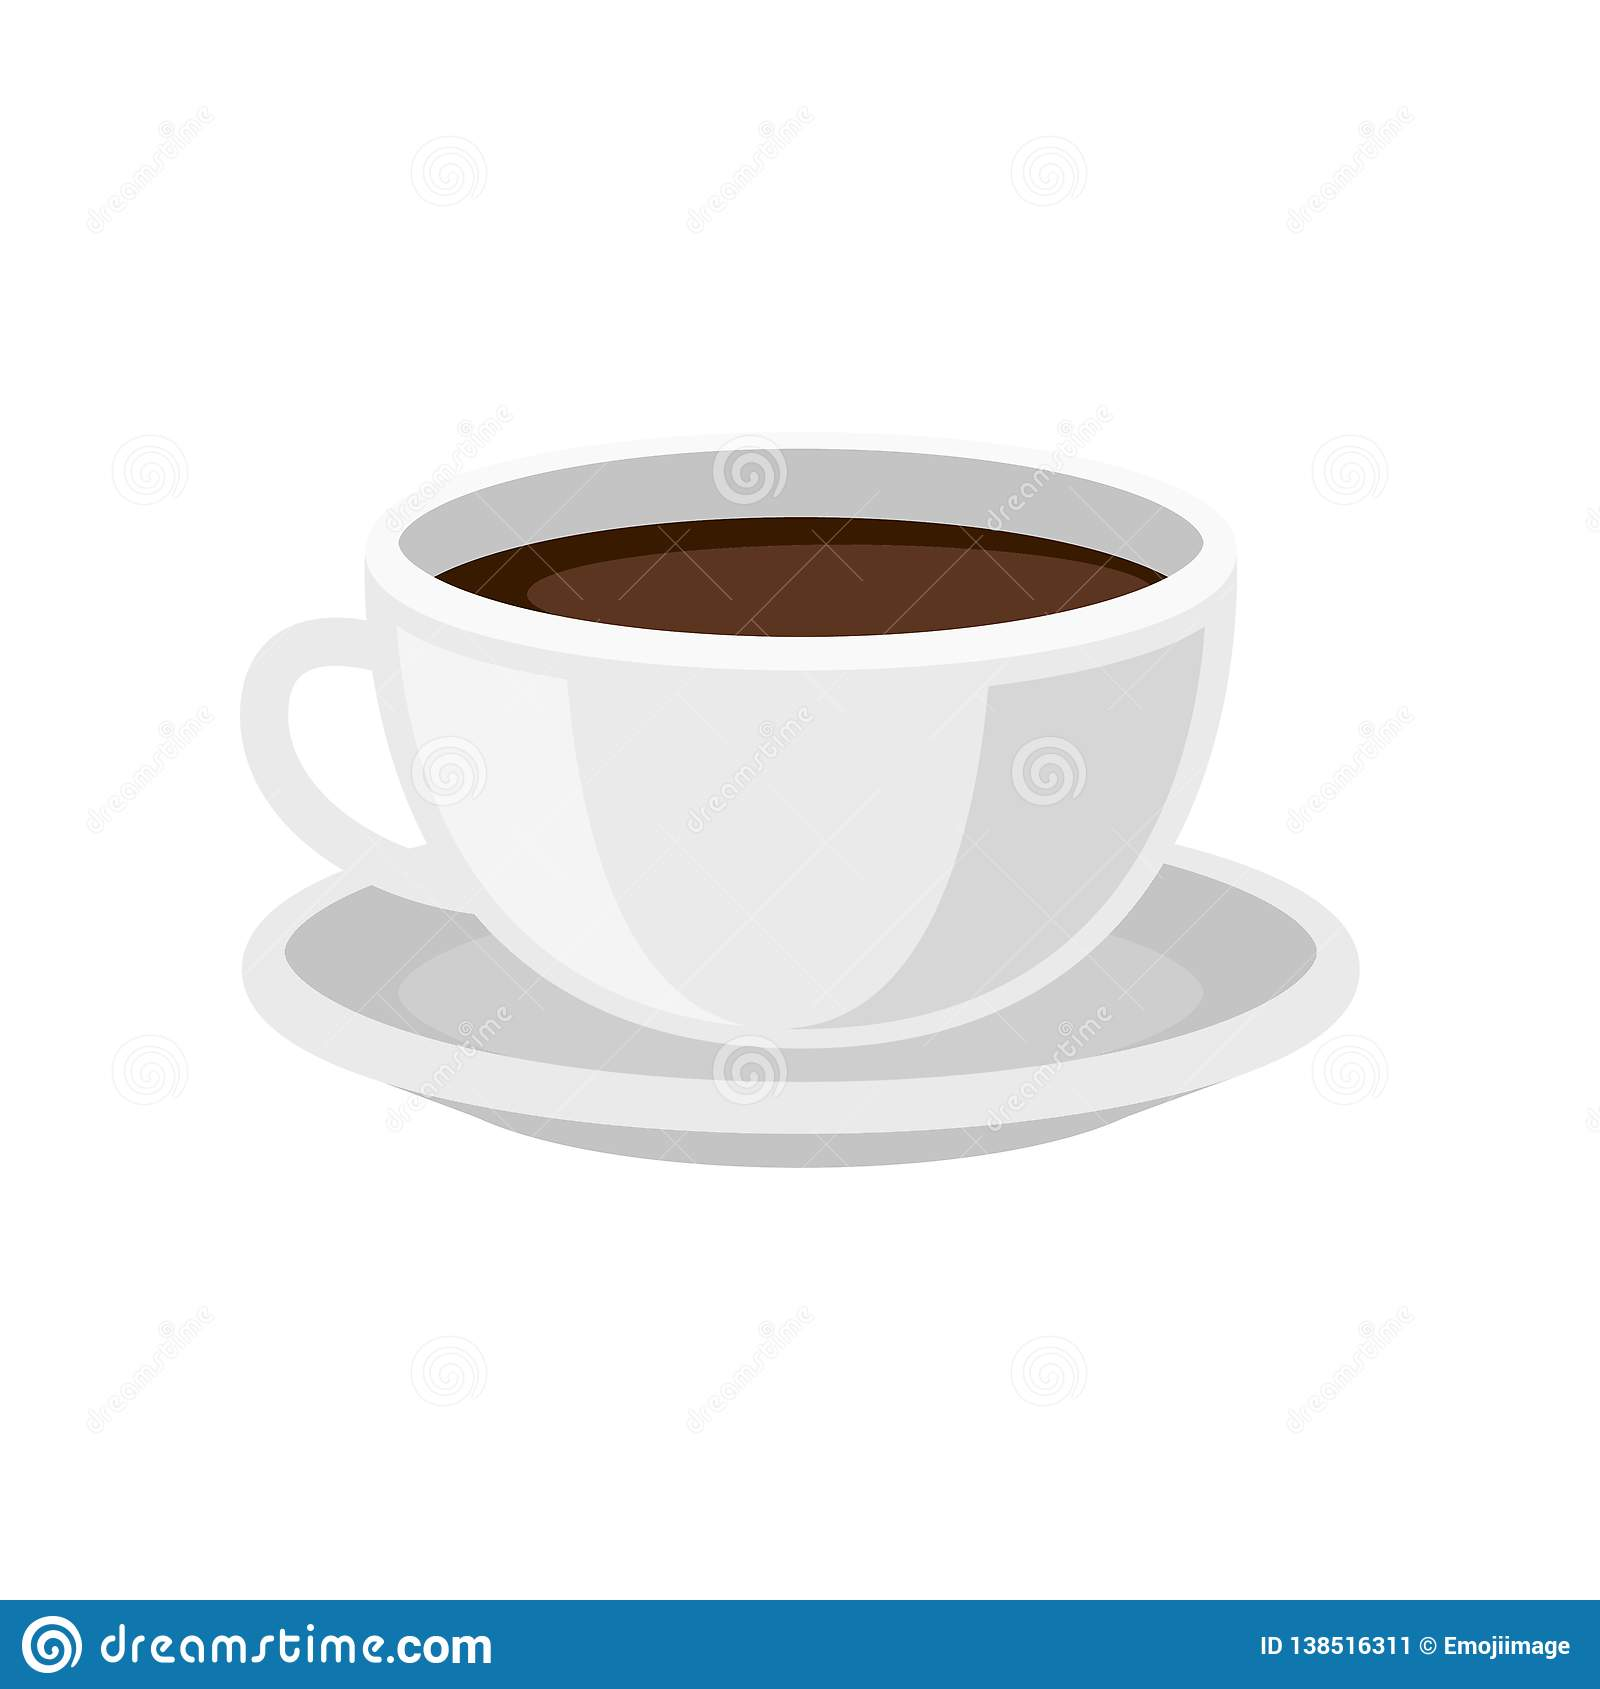 Cup Of Fresh Coffee On Saucer Tasty Morning Beverage Hot Drink Flat Vector Design For Cafe Menu Stock Vector Illustration Of Colorful Cafe 138516311